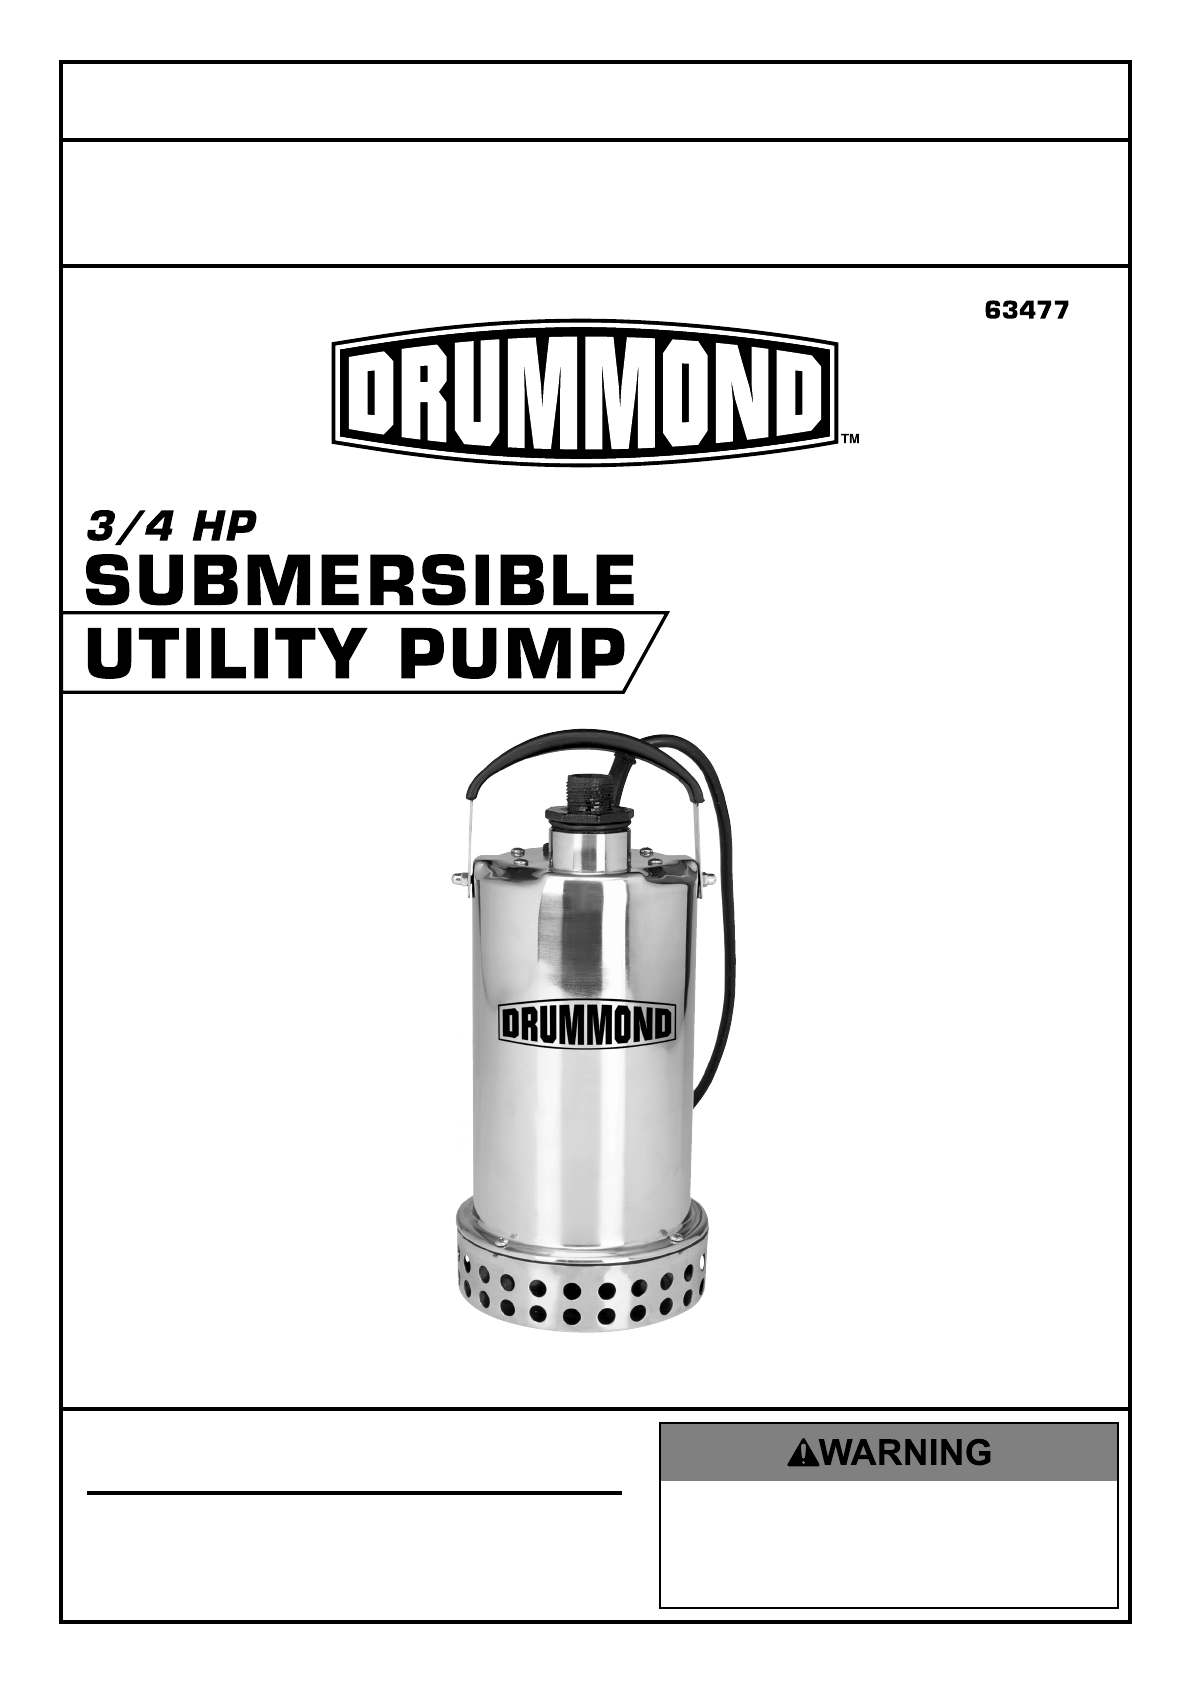 Manual For The 63477 3/4 HP Submersible Utility Pump Stainless Steel